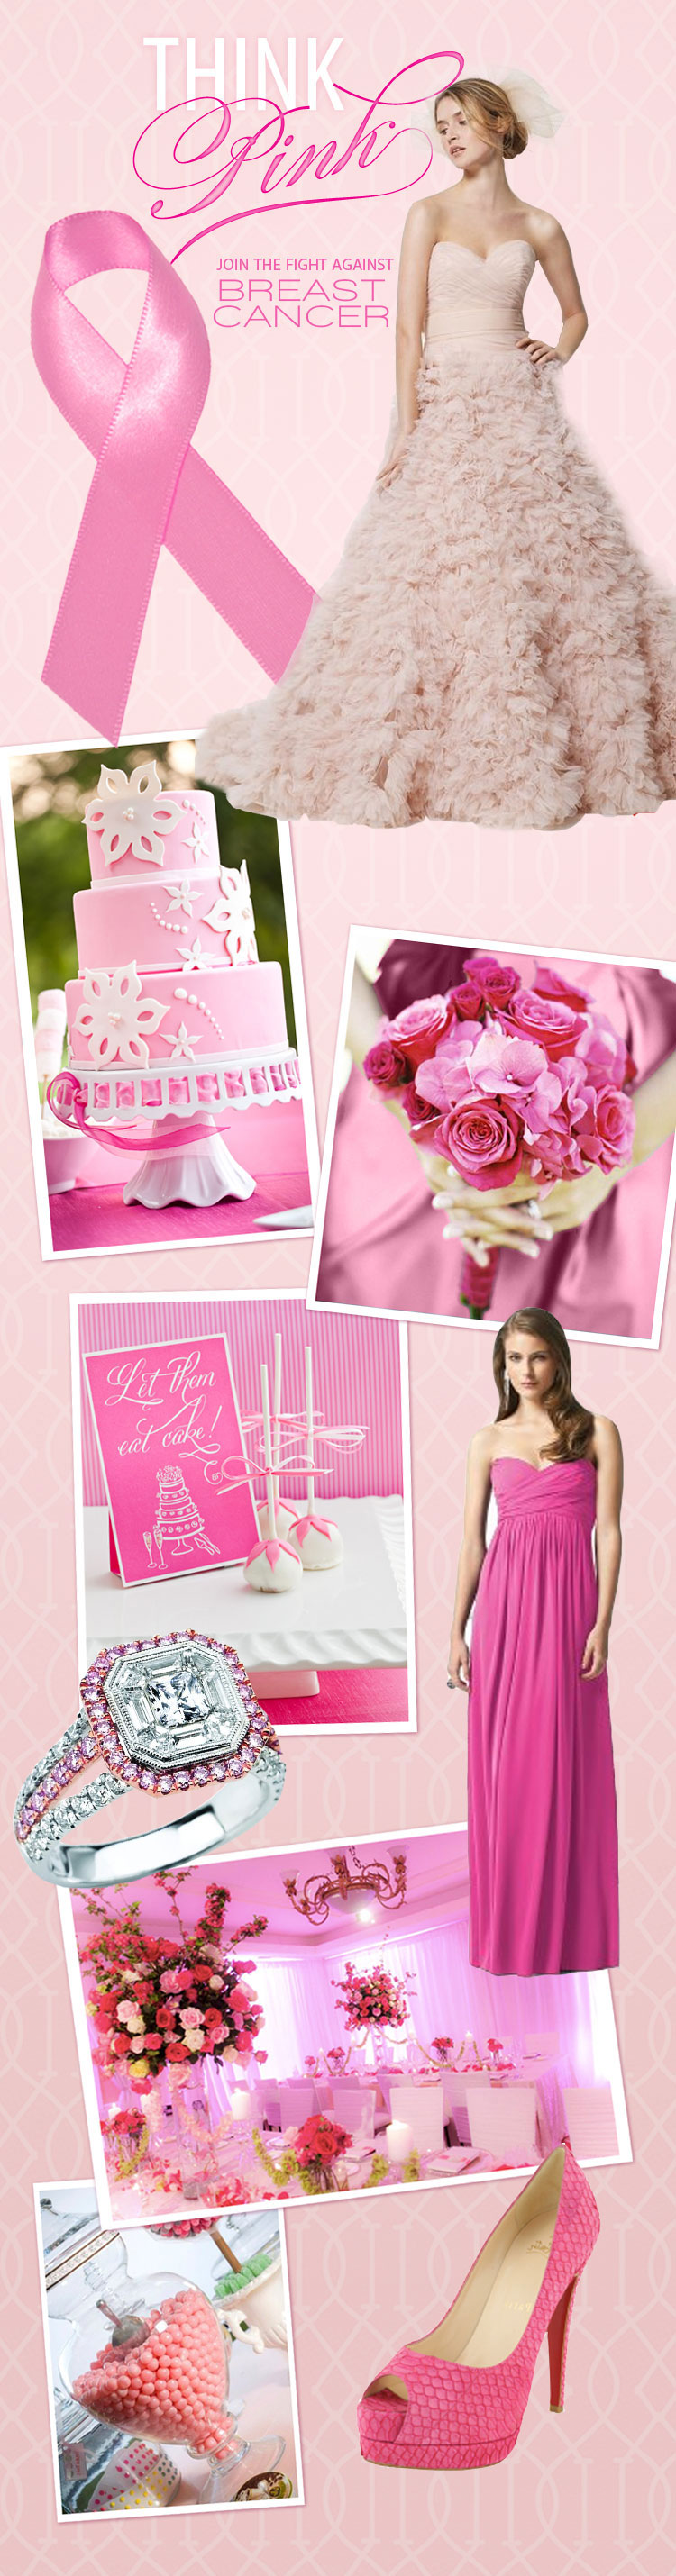 Brides of North Texas Breast Cancer Awareness Month pink wedding inspiration